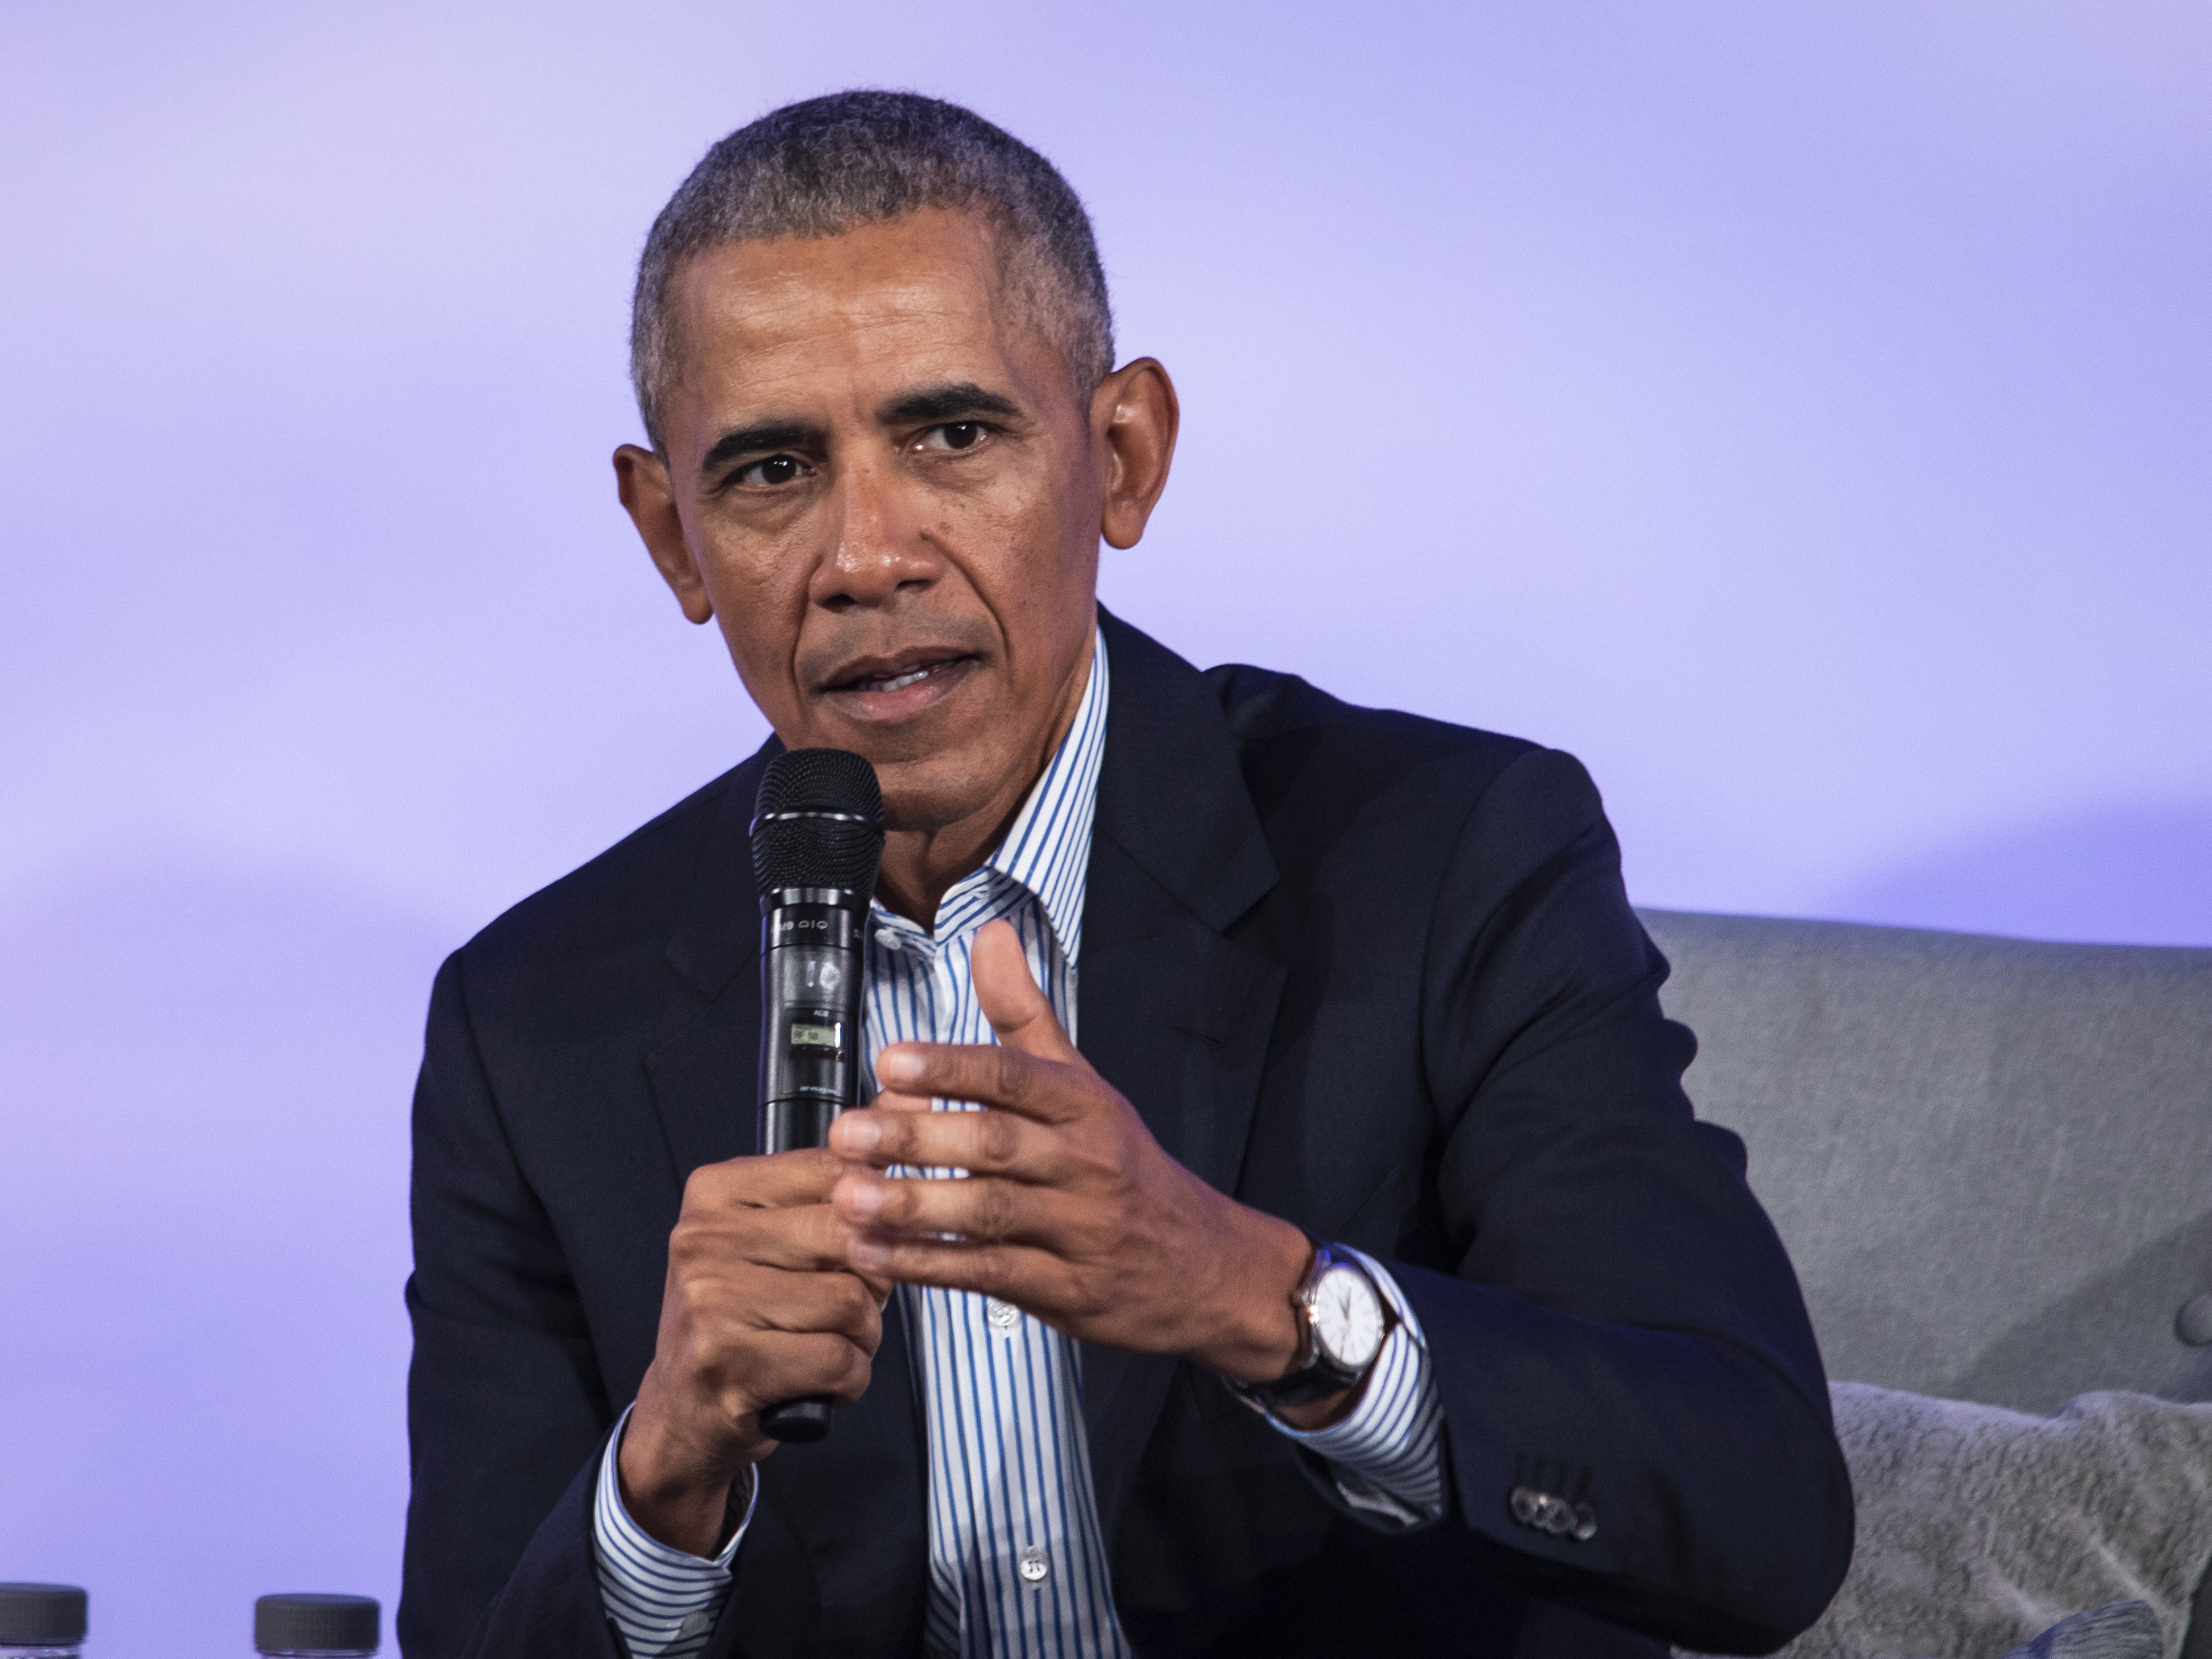 Obama talks climate change, inequality at green conference